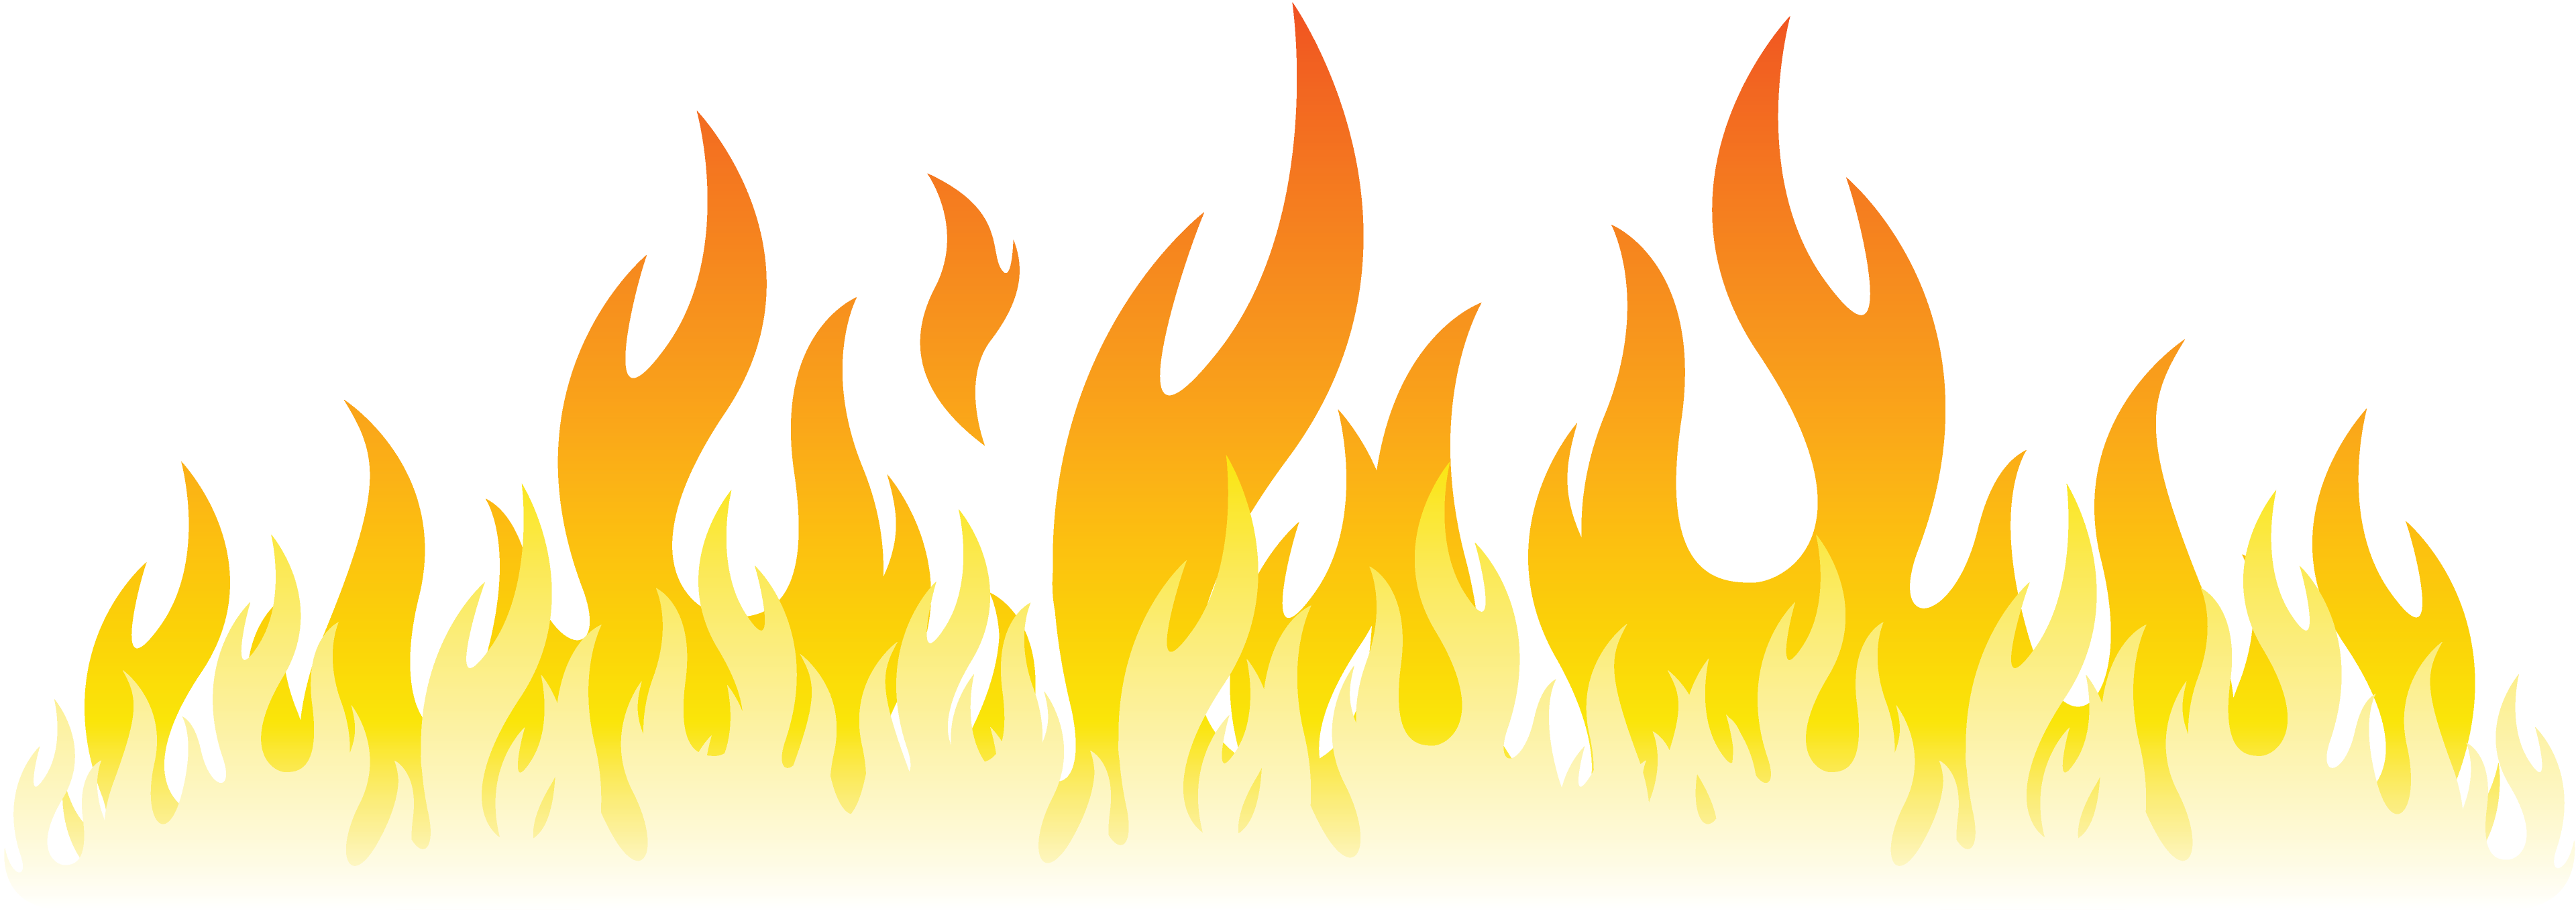 Clipart flames royalty free. Flame clip art transprent